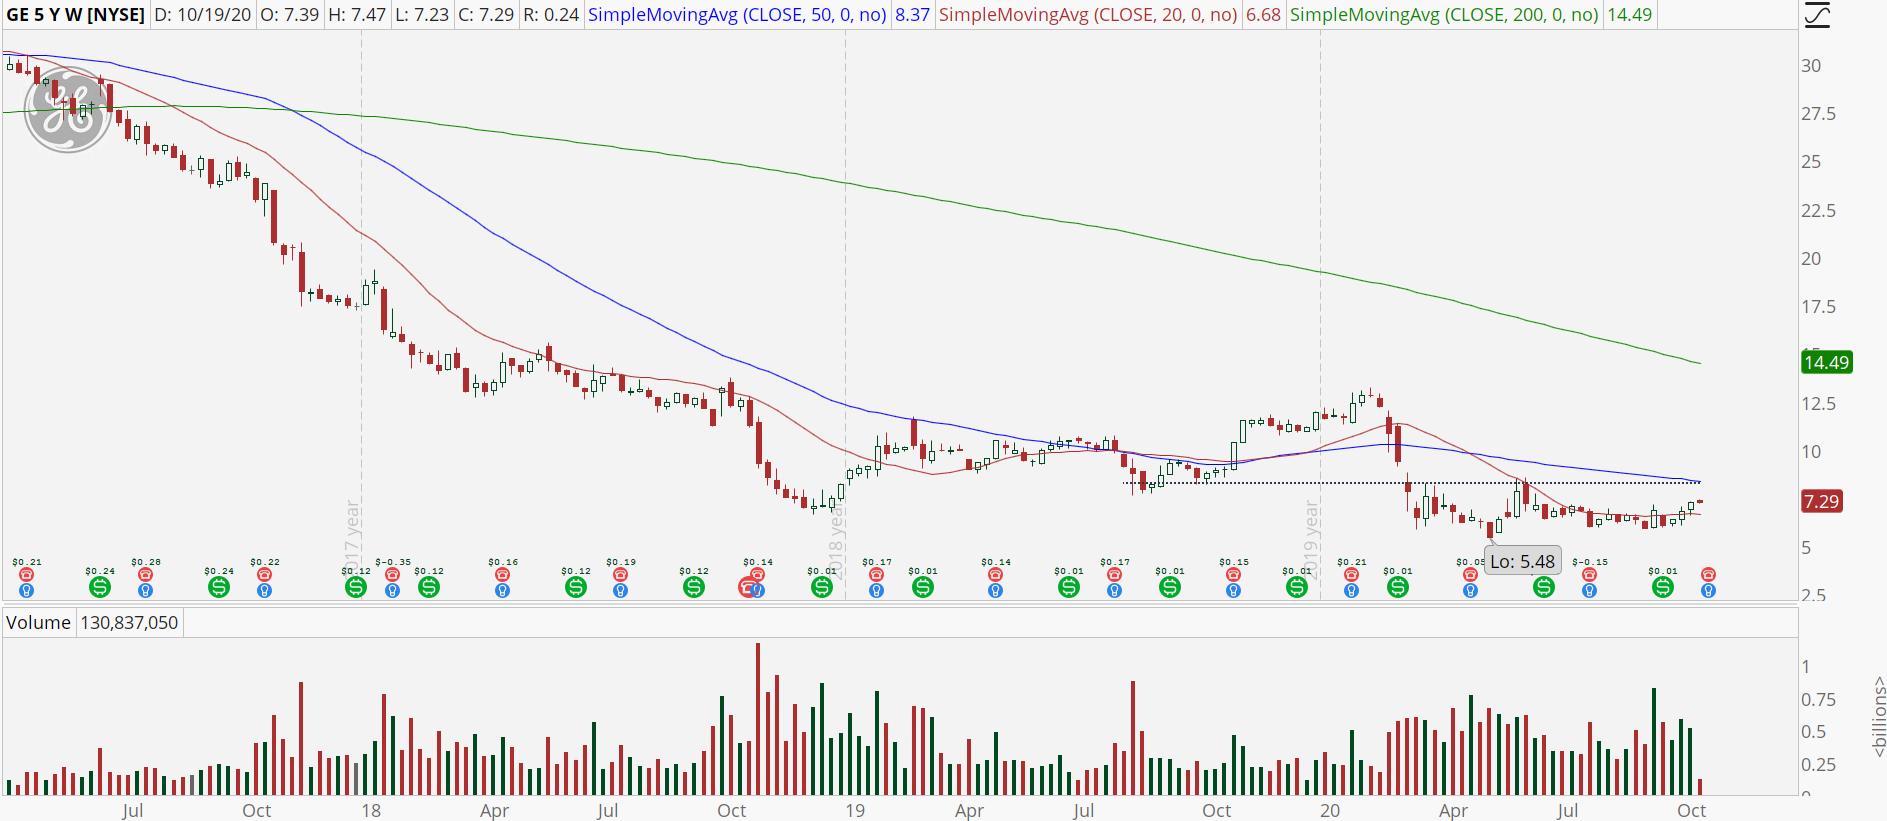 General Electric (GE) weekly chart showing overhead resistance